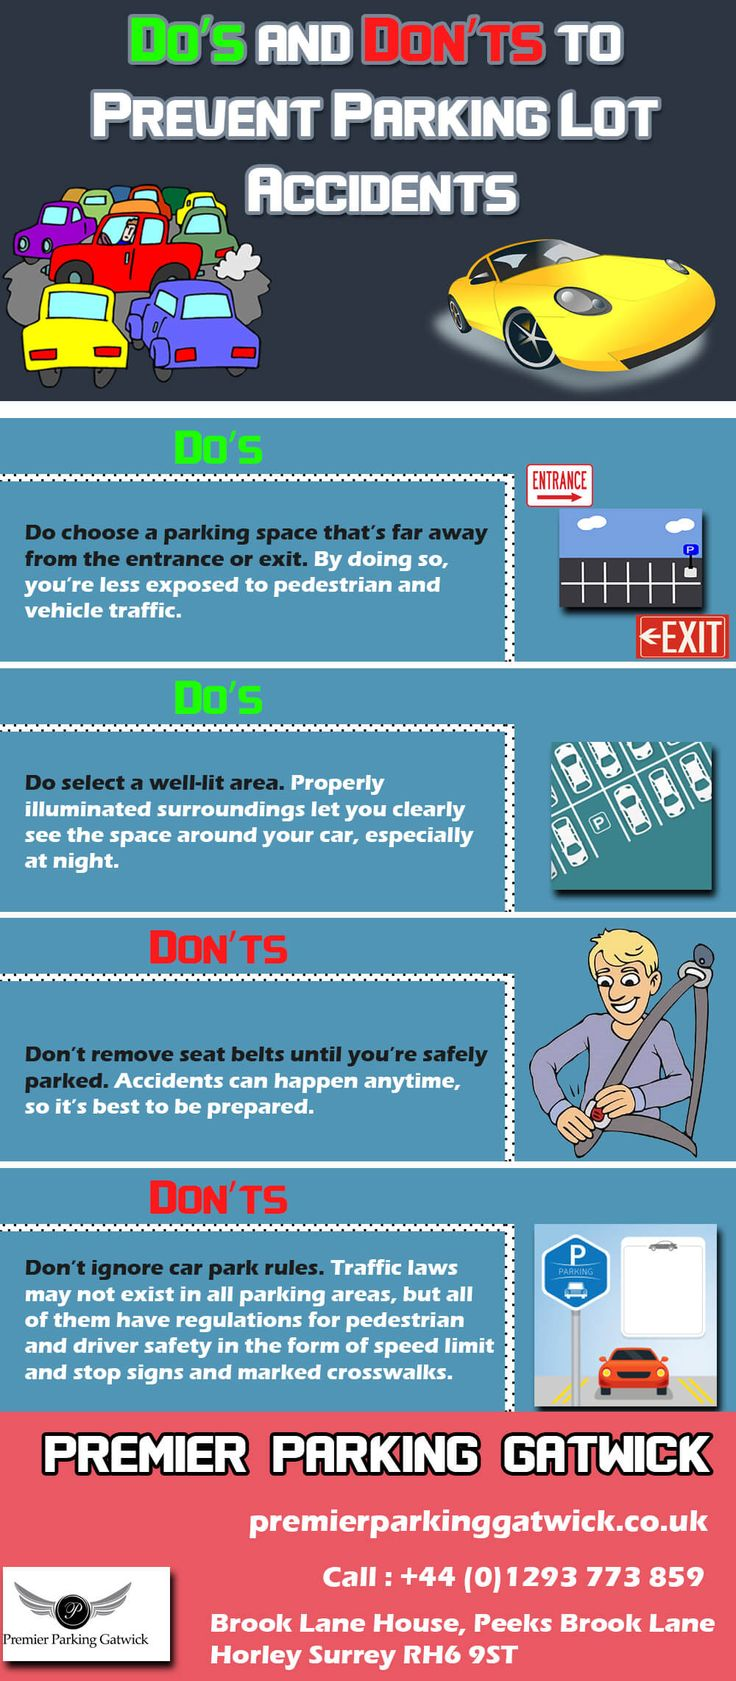 8 things to do before you park your car at the airport premier 8 things to do before you park your car at the airport premier valet parking pinterest parks cars and airports kristyandbryce Images